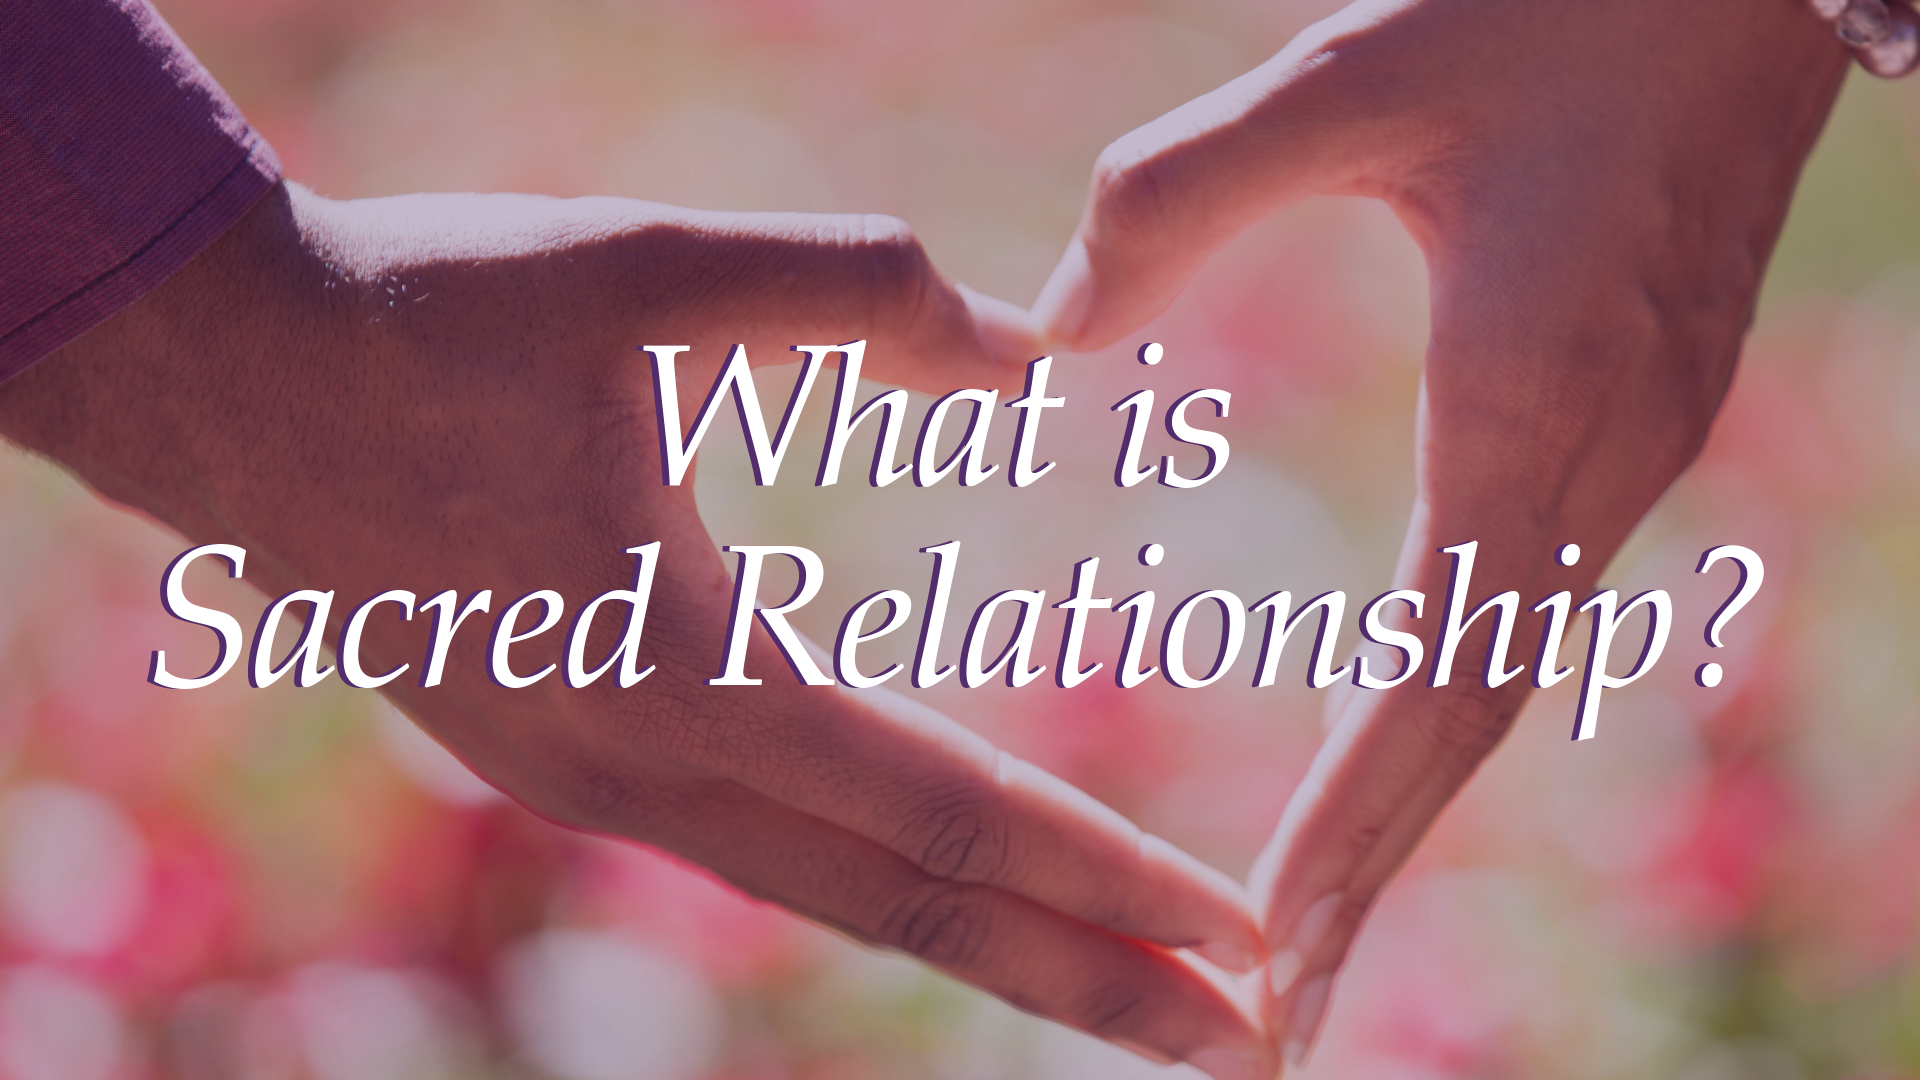 What is Sacred Relationship?